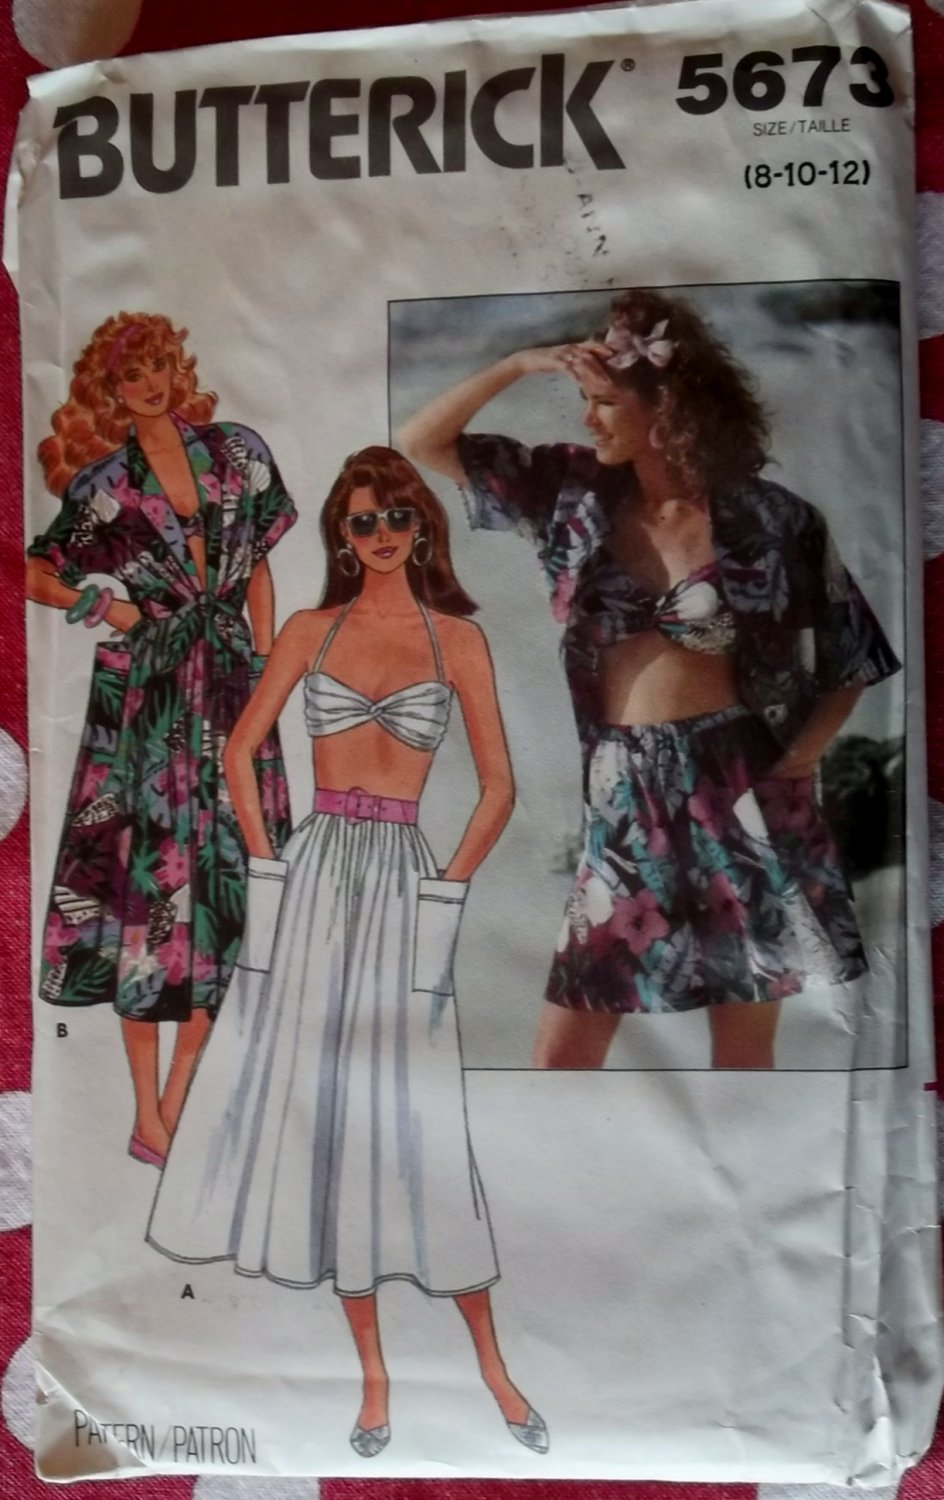 OOP Butterick 5673 Misses Summer Shirt, Skirt, Shorts and Bra Pattern, Sz 8 to 12, Uncut